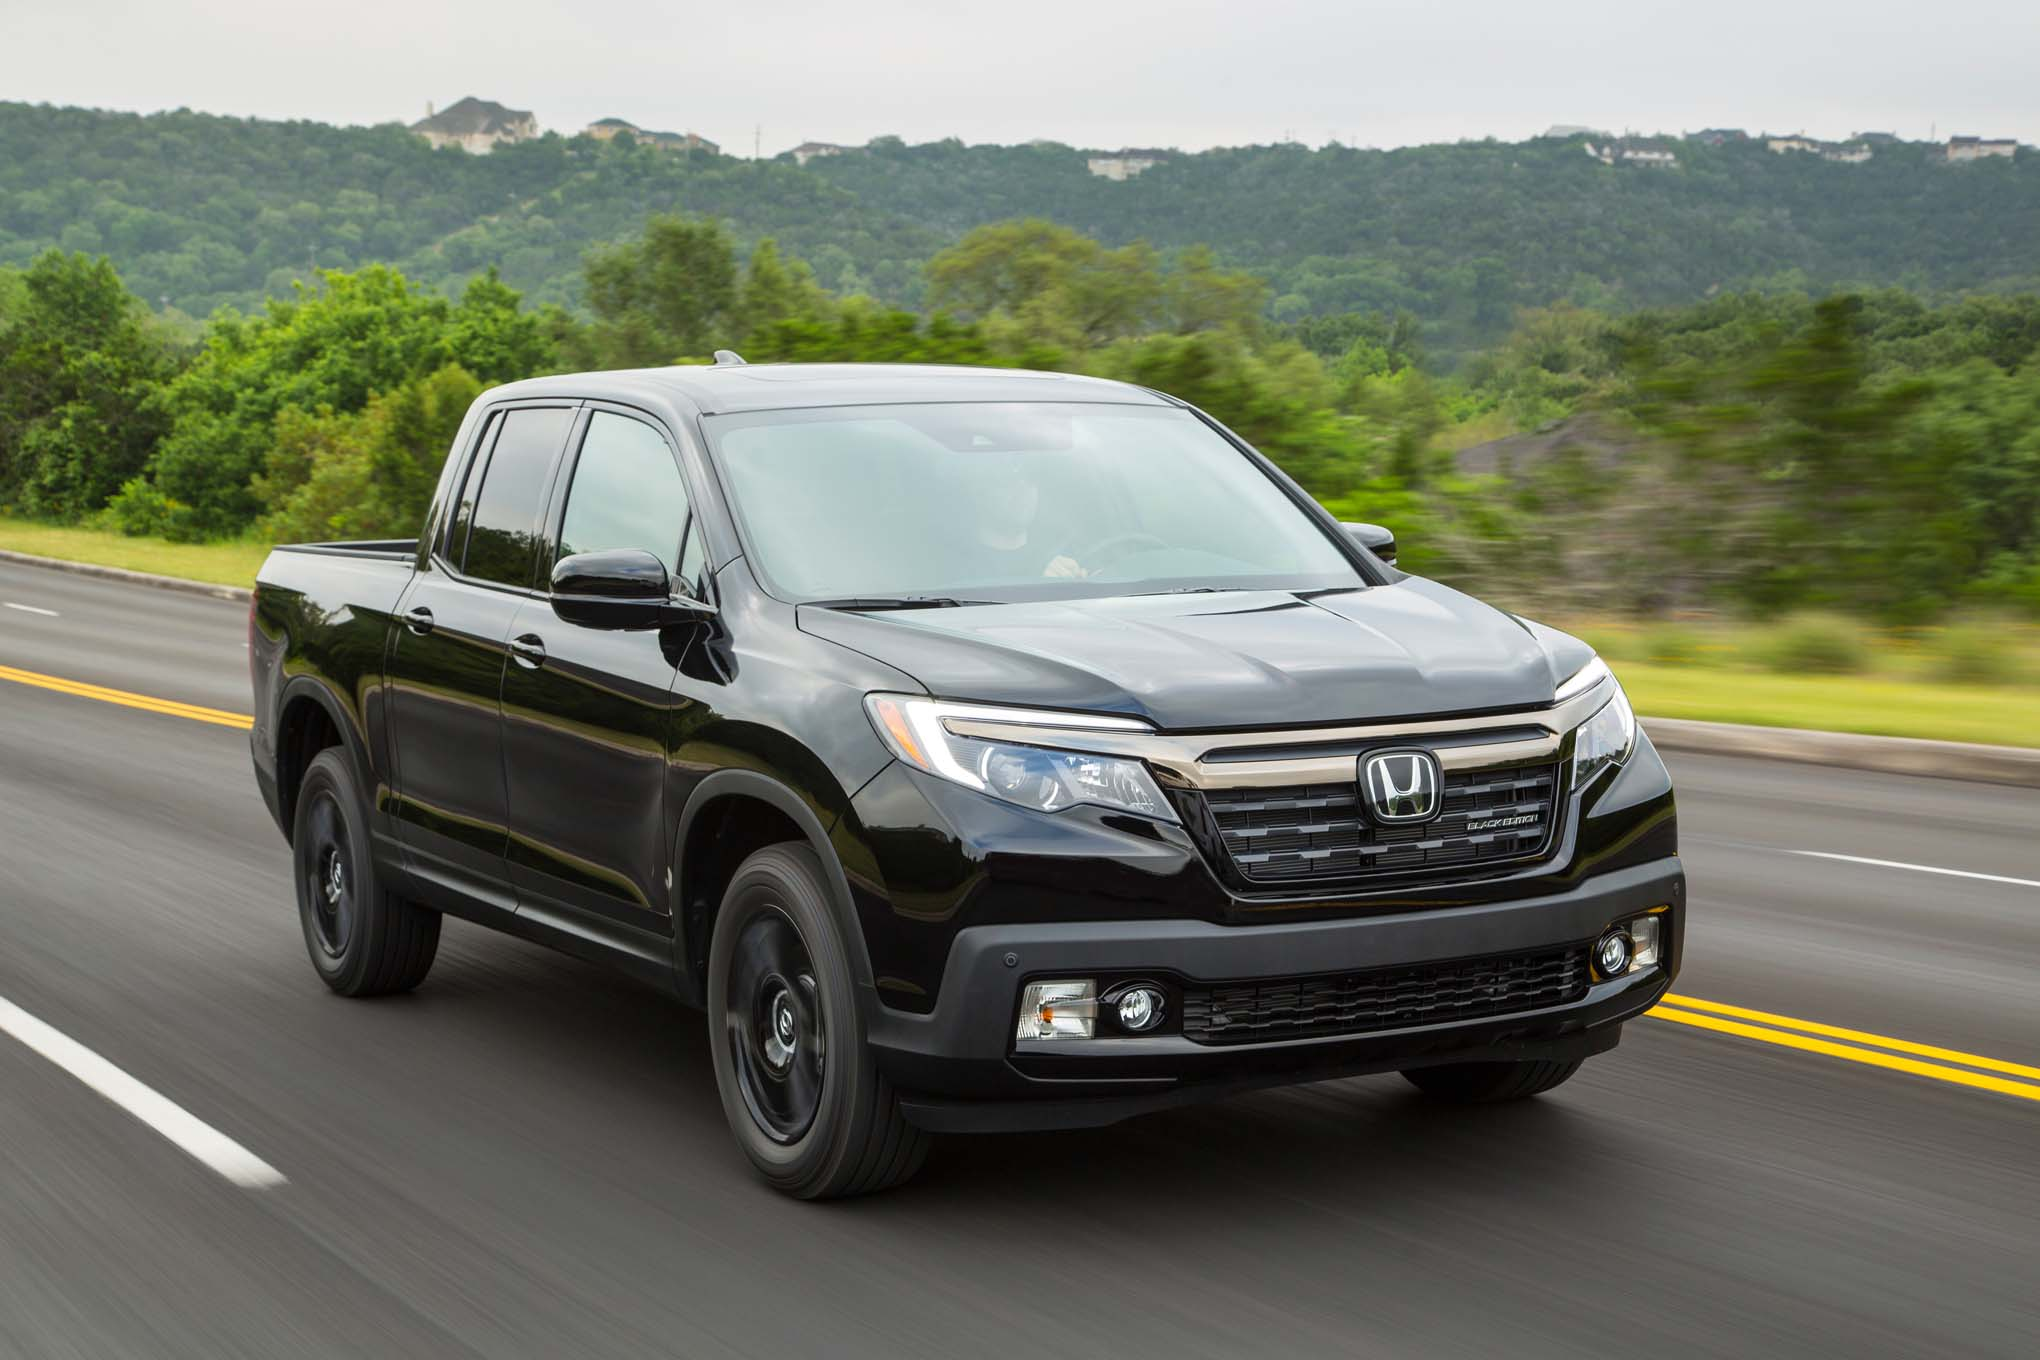 2017 Honda Ridgeline Black Edition front three quarter in motion 02 by design 2017 honda ridgeline ridgeline fuse box at honlapkeszites.co